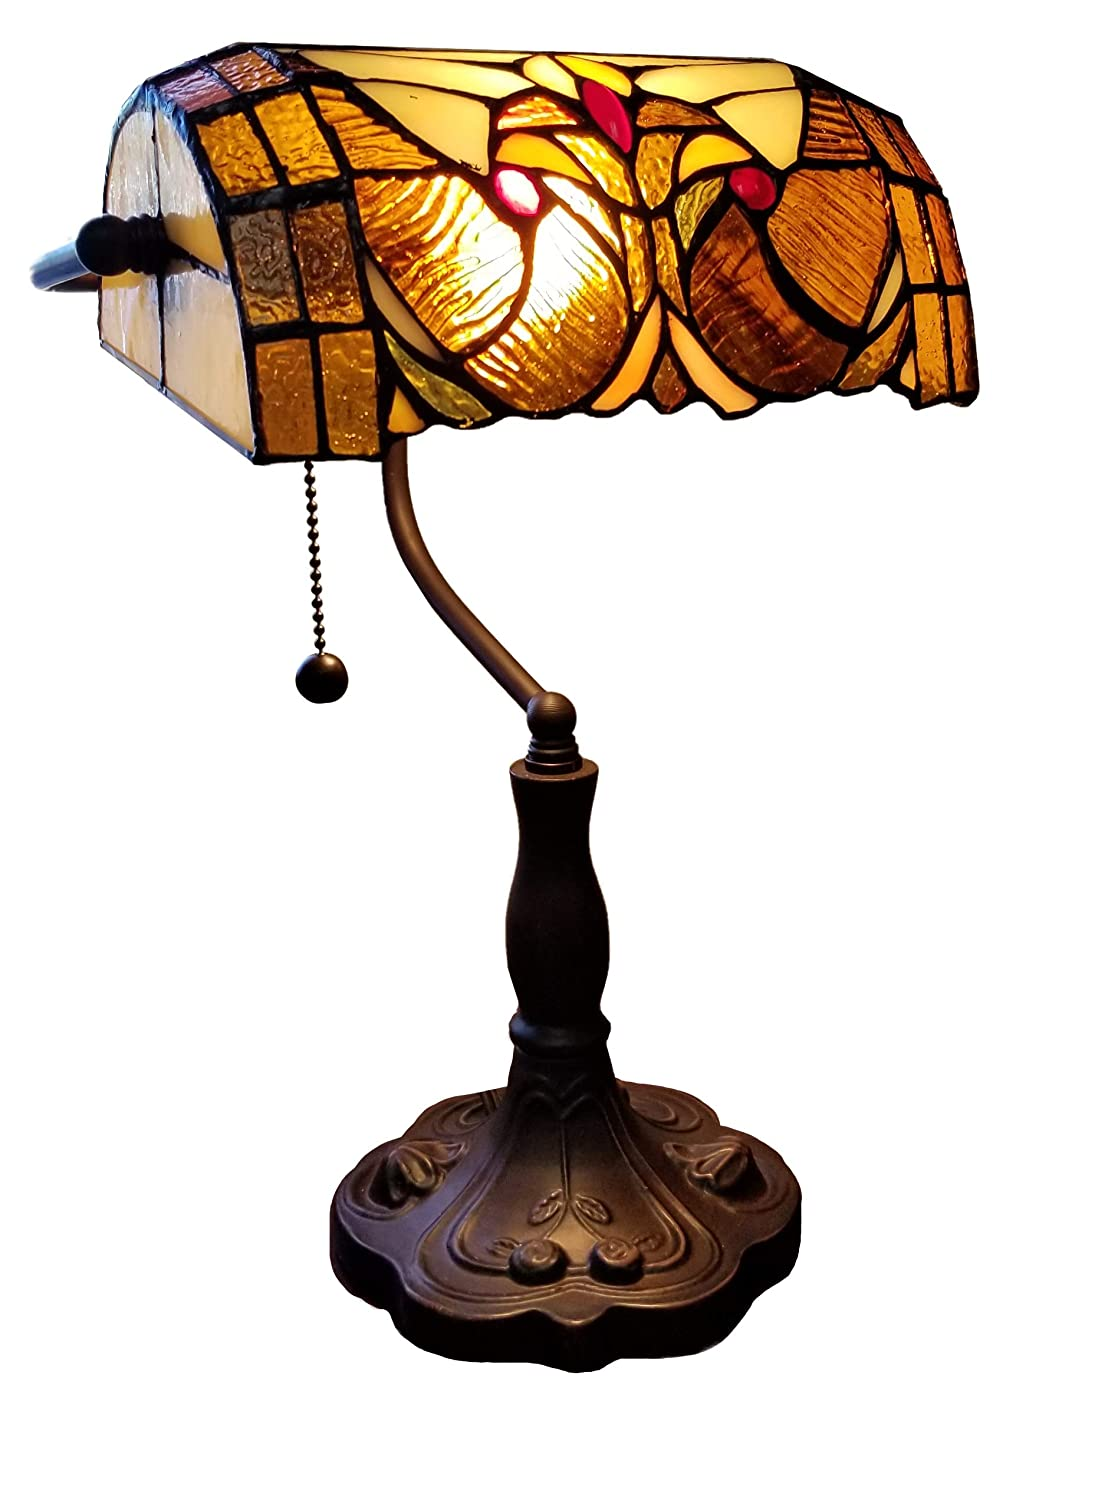 "Amora Lighting Tiffany Style Table Lamp Banker Floral 13"" Tall Stained Glass Tan Brown Red Vintage Antique Light Décor Night Stand Living Room Bedroom Handmade Gift AM339TL10, Multicolor"